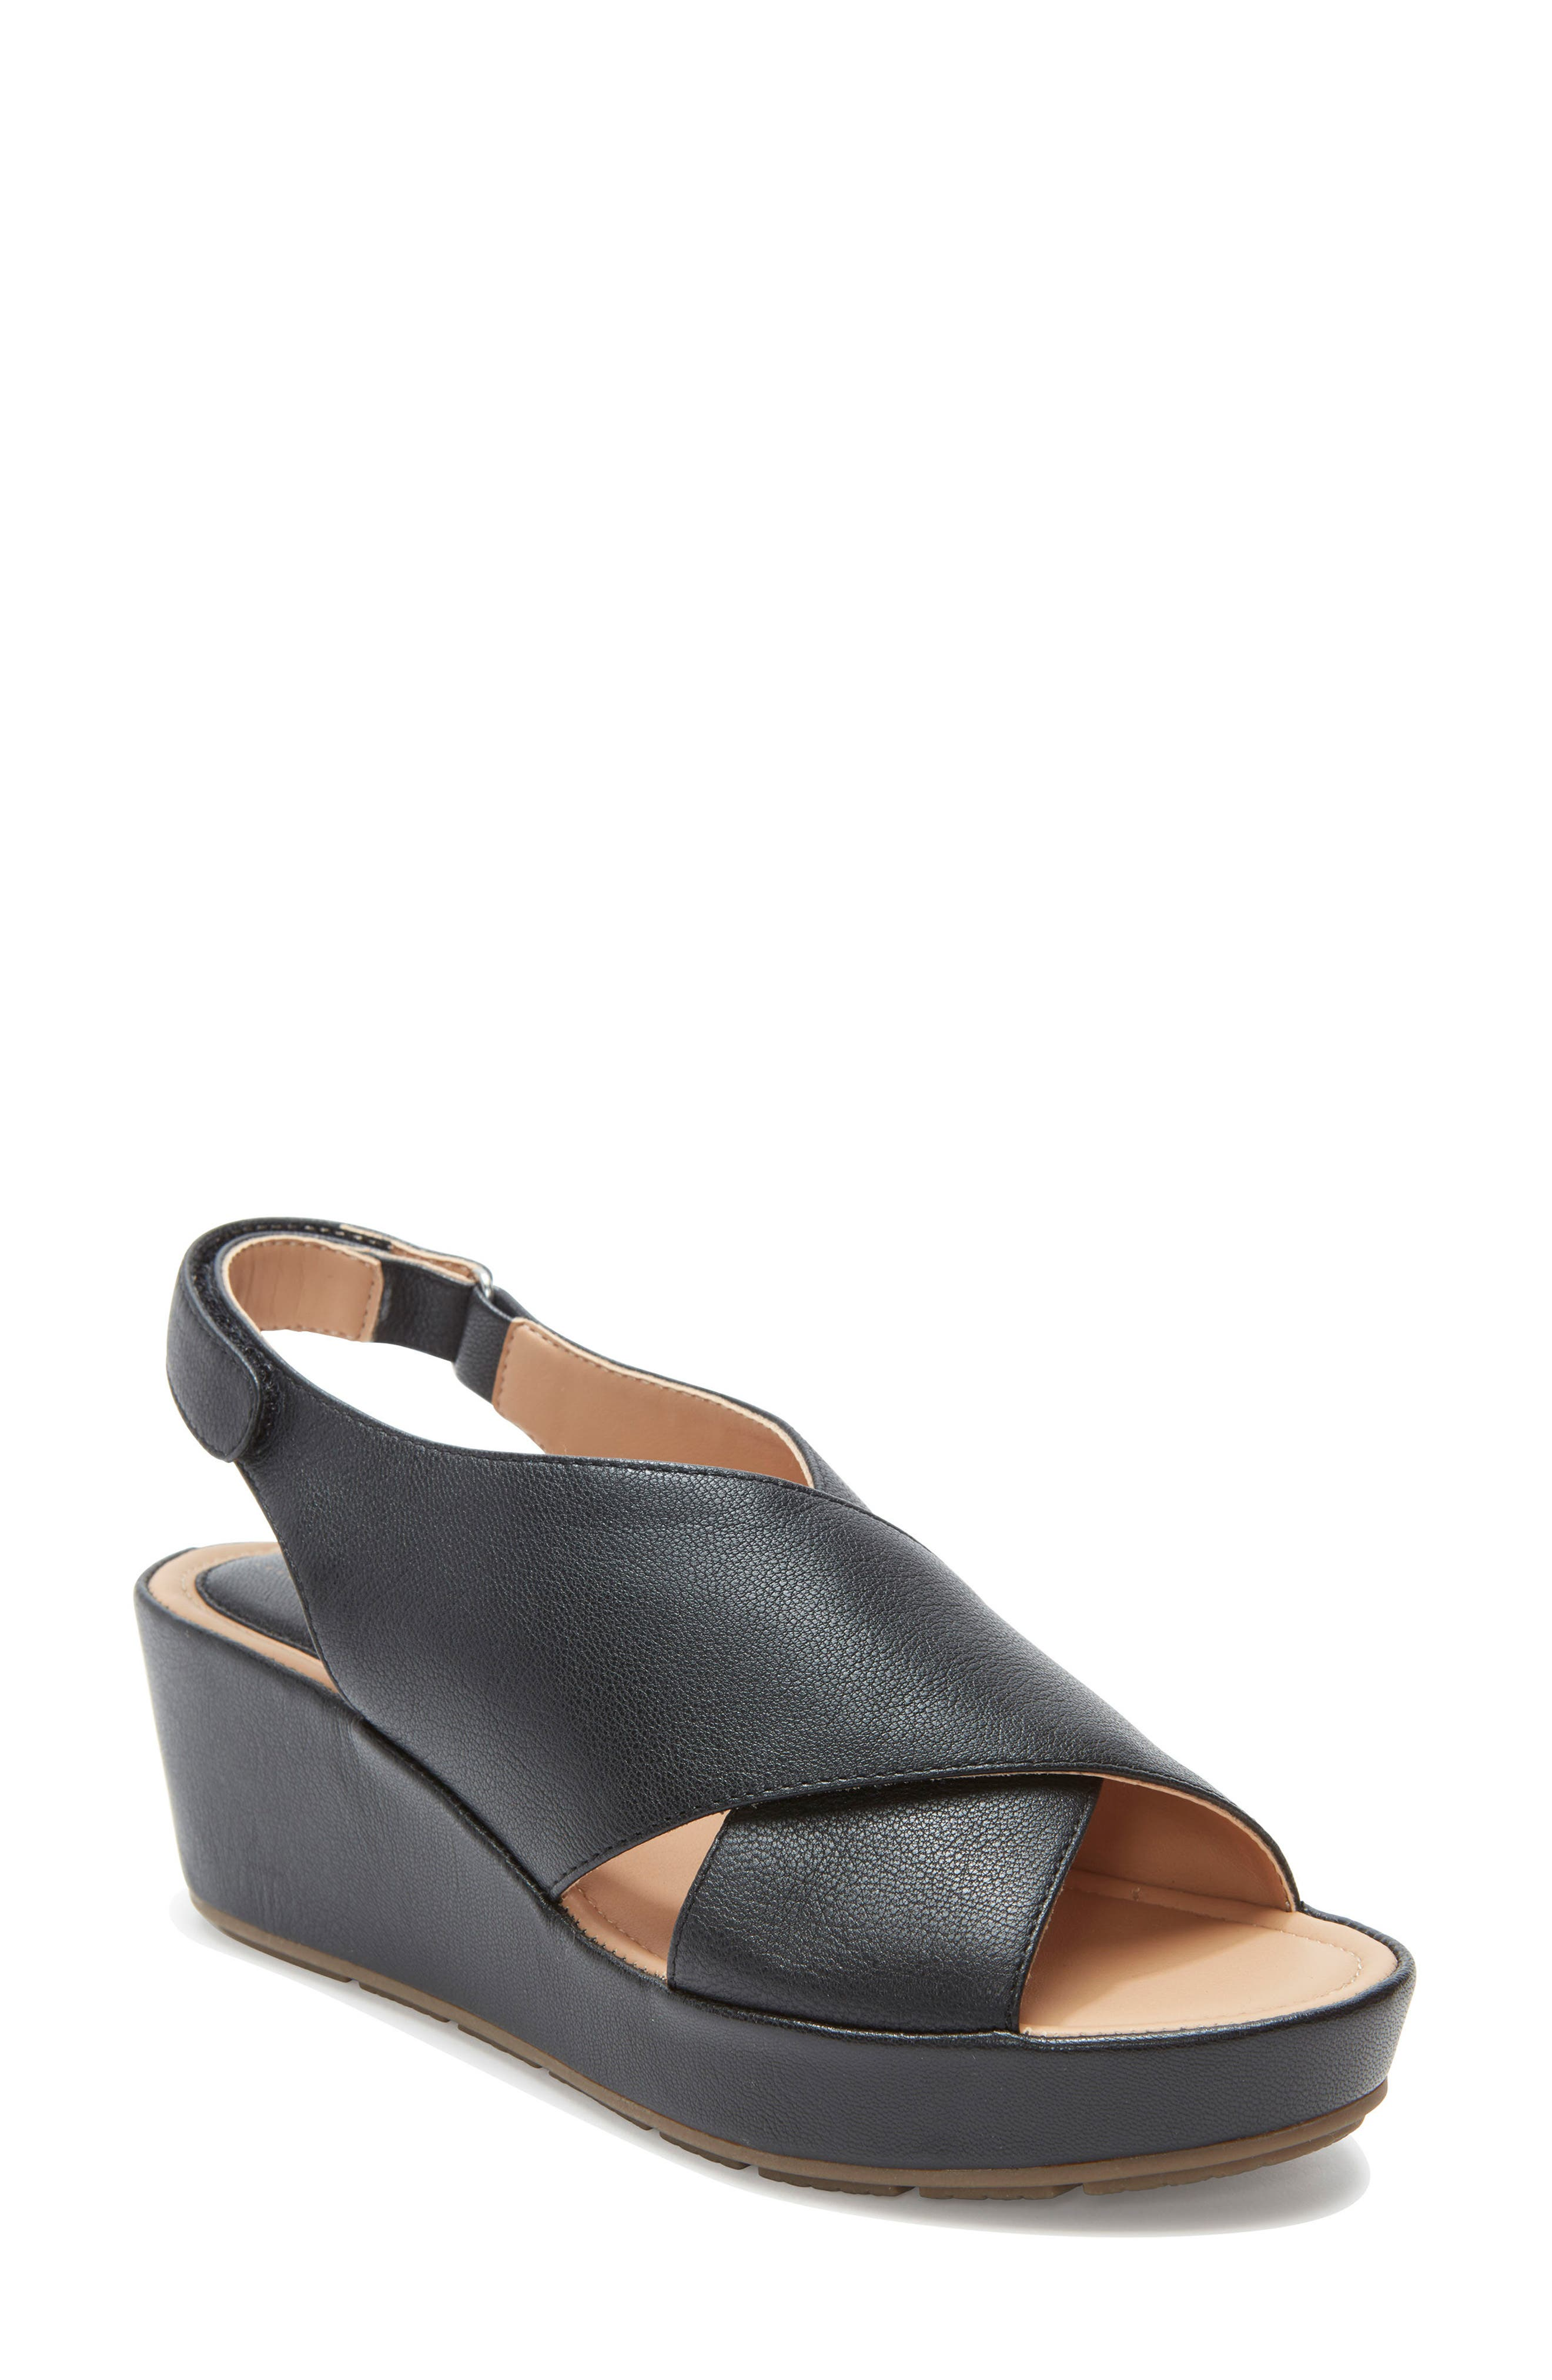 ME TOO, Arena Wedge Sandal, Main thumbnail 1, color, BLACK LEATHER